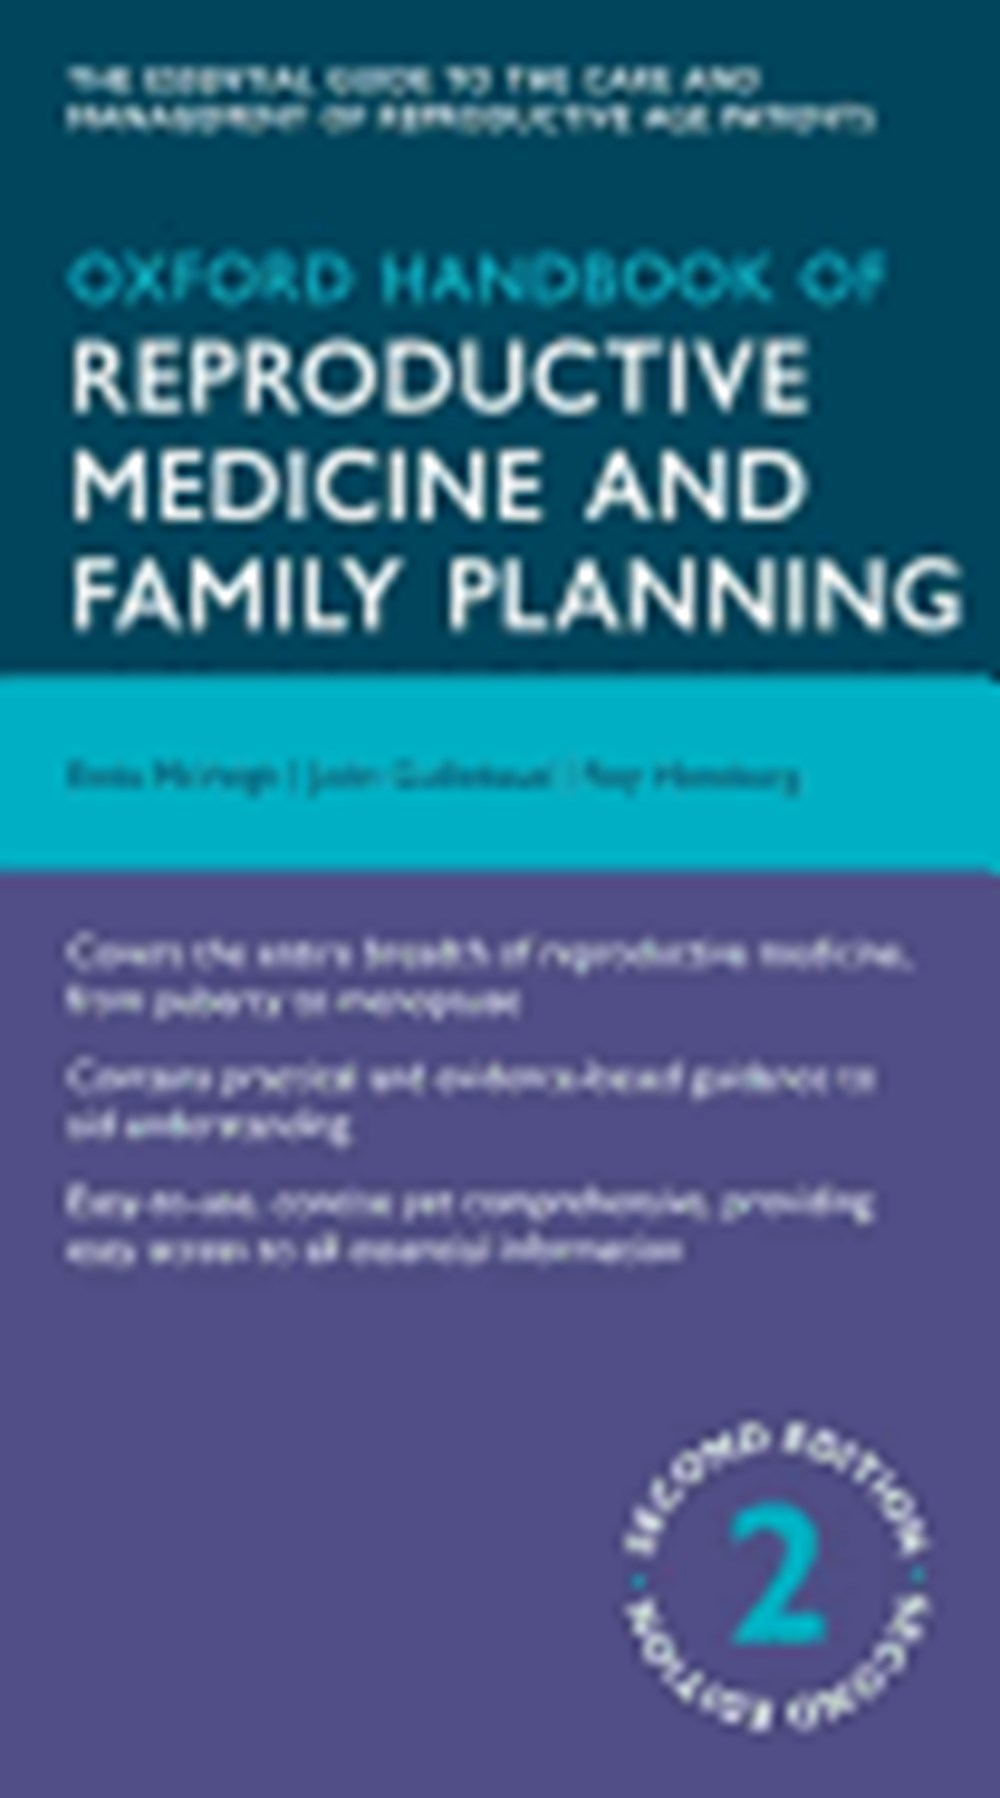 Oxford Handbook of Reproductive Medicine and Family Planning